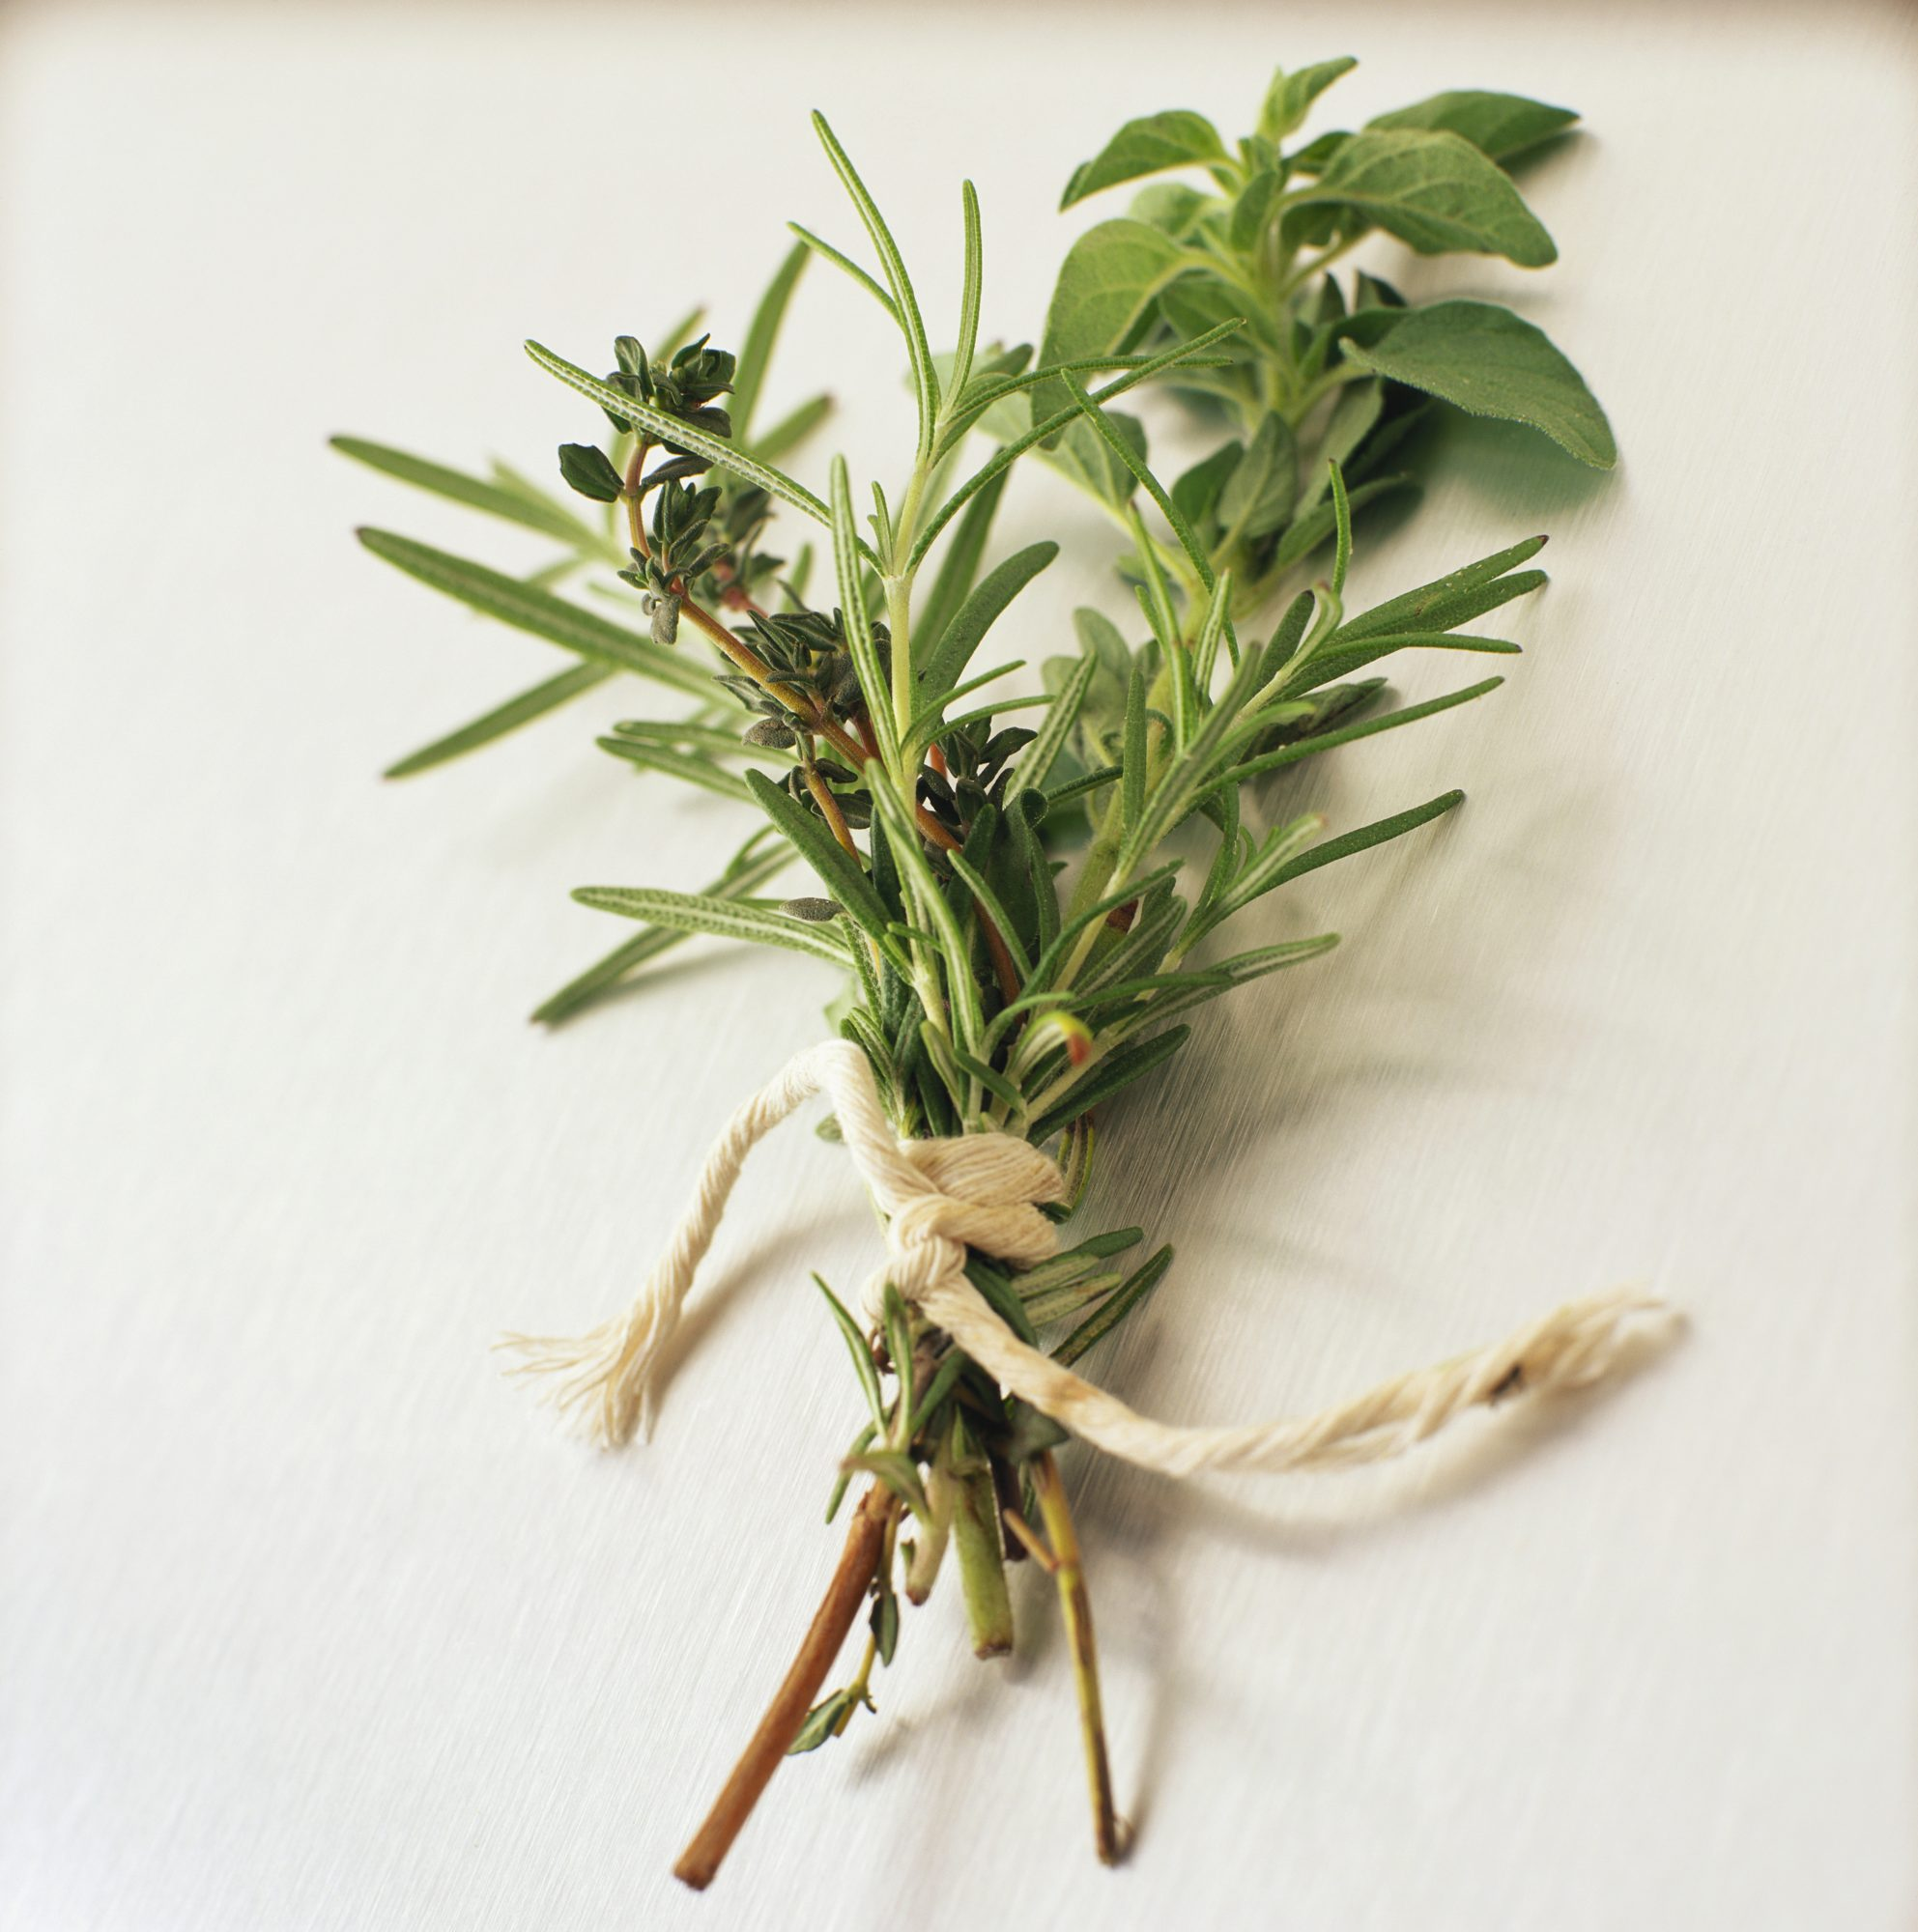 Bundle of Thyme, Rosemary and Oregano